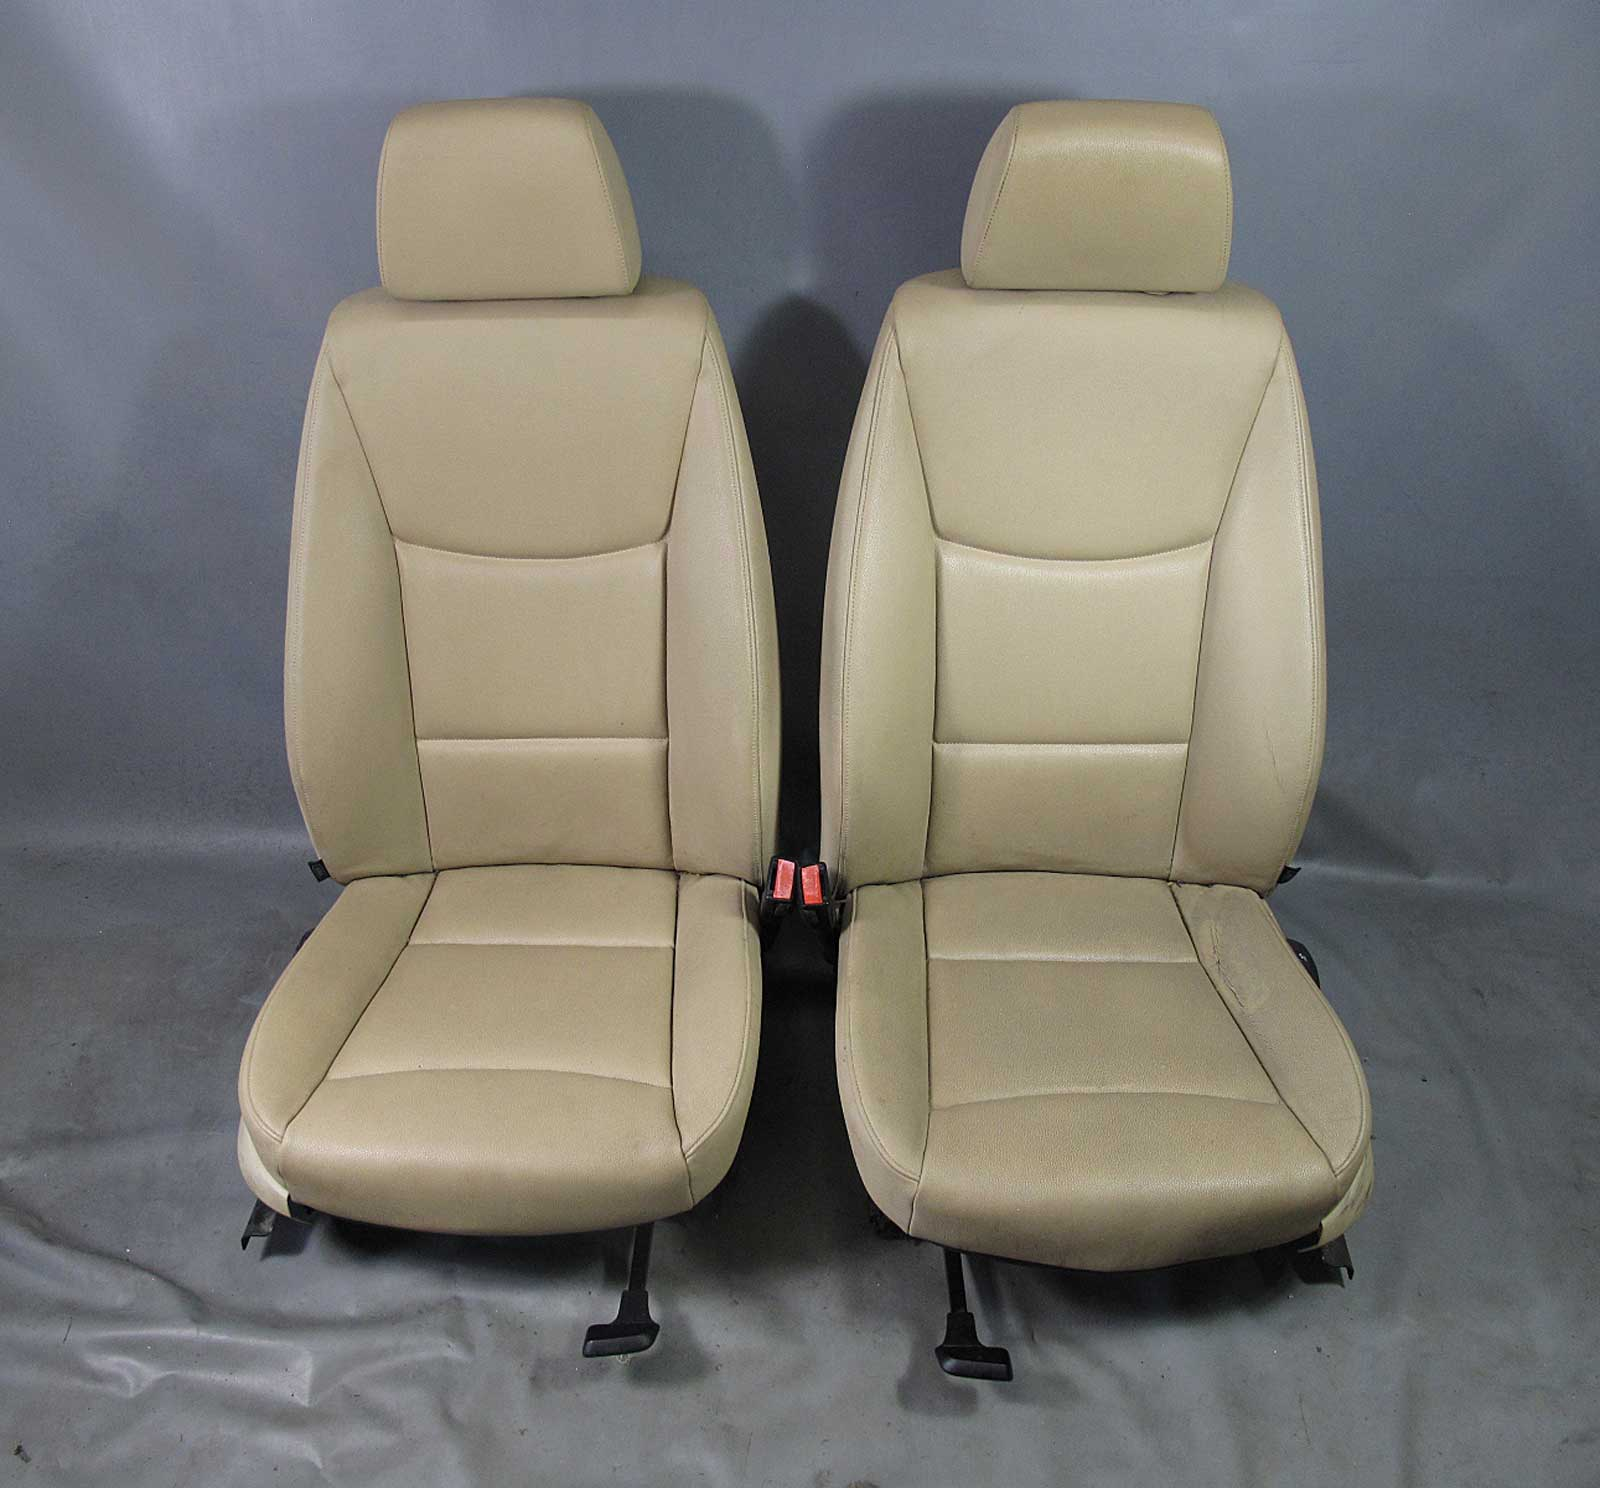 2002 Bmw 325i Seat Covers